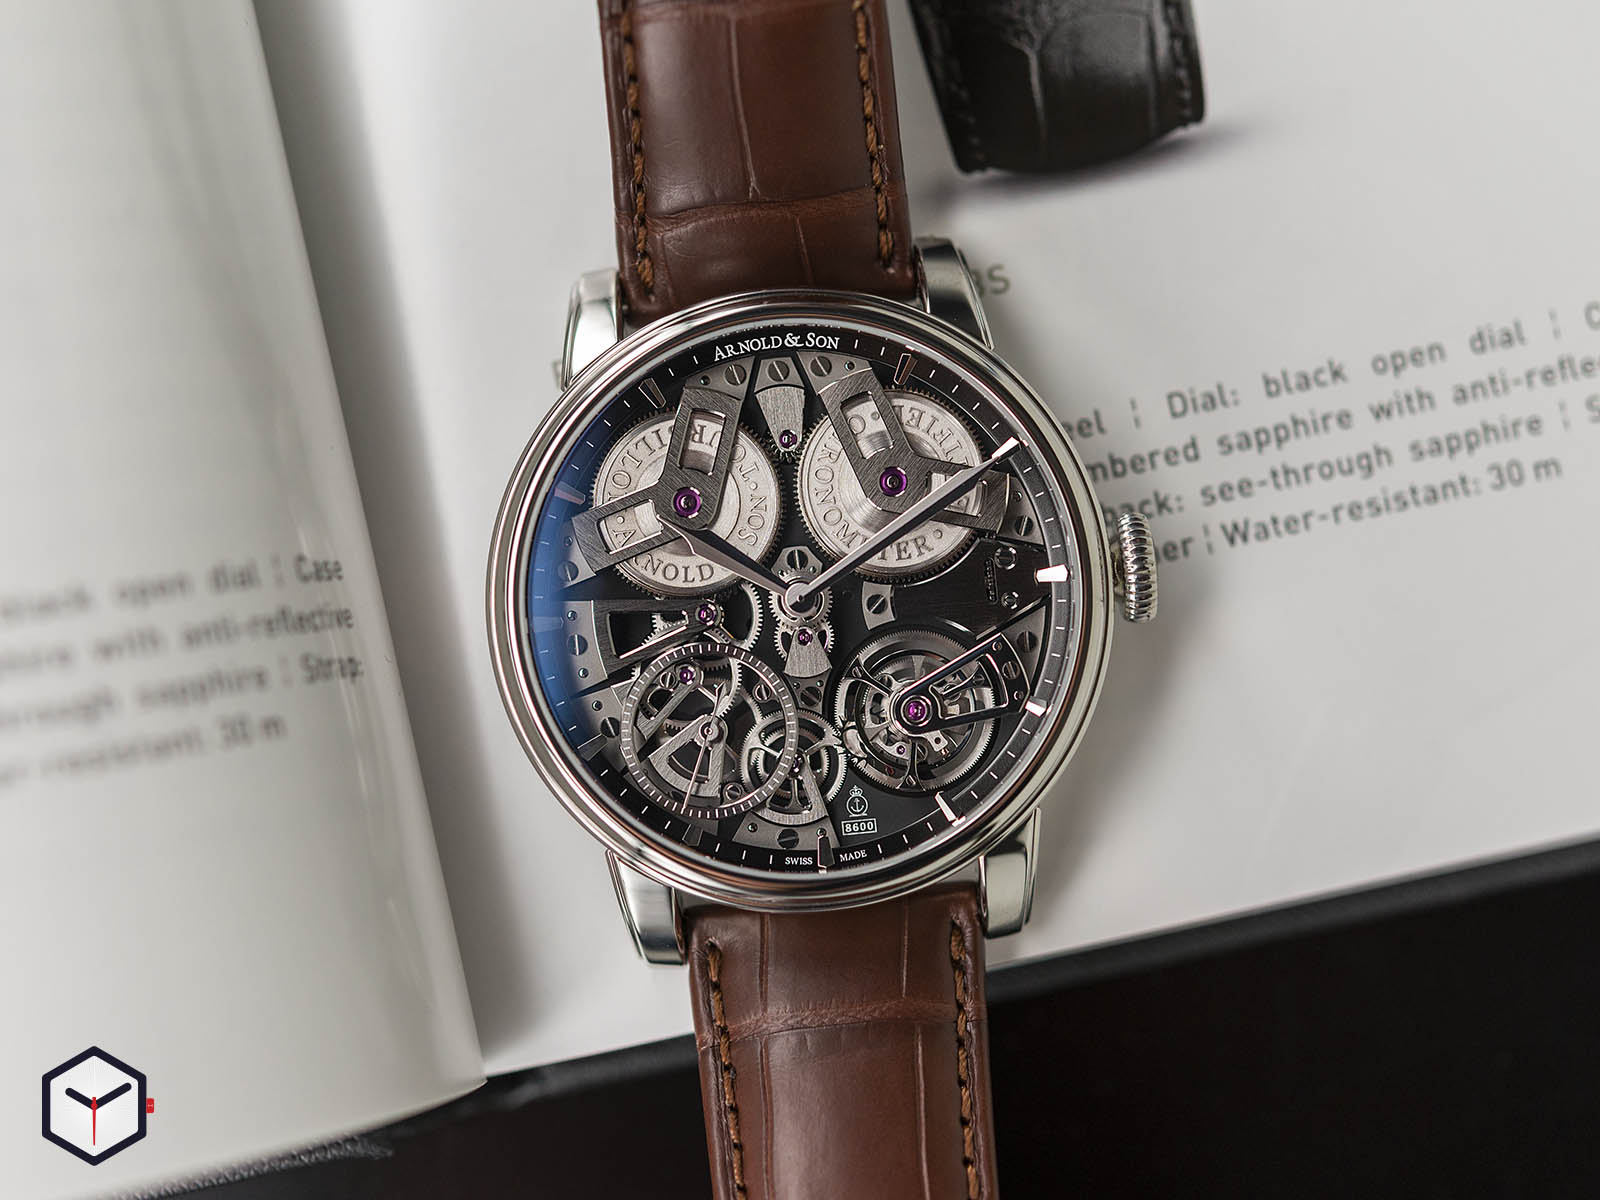 1etas-b01a-c113s-arnold-son-tourbillon-chronometer-no-36-tribute-edition-steel-2.jpg